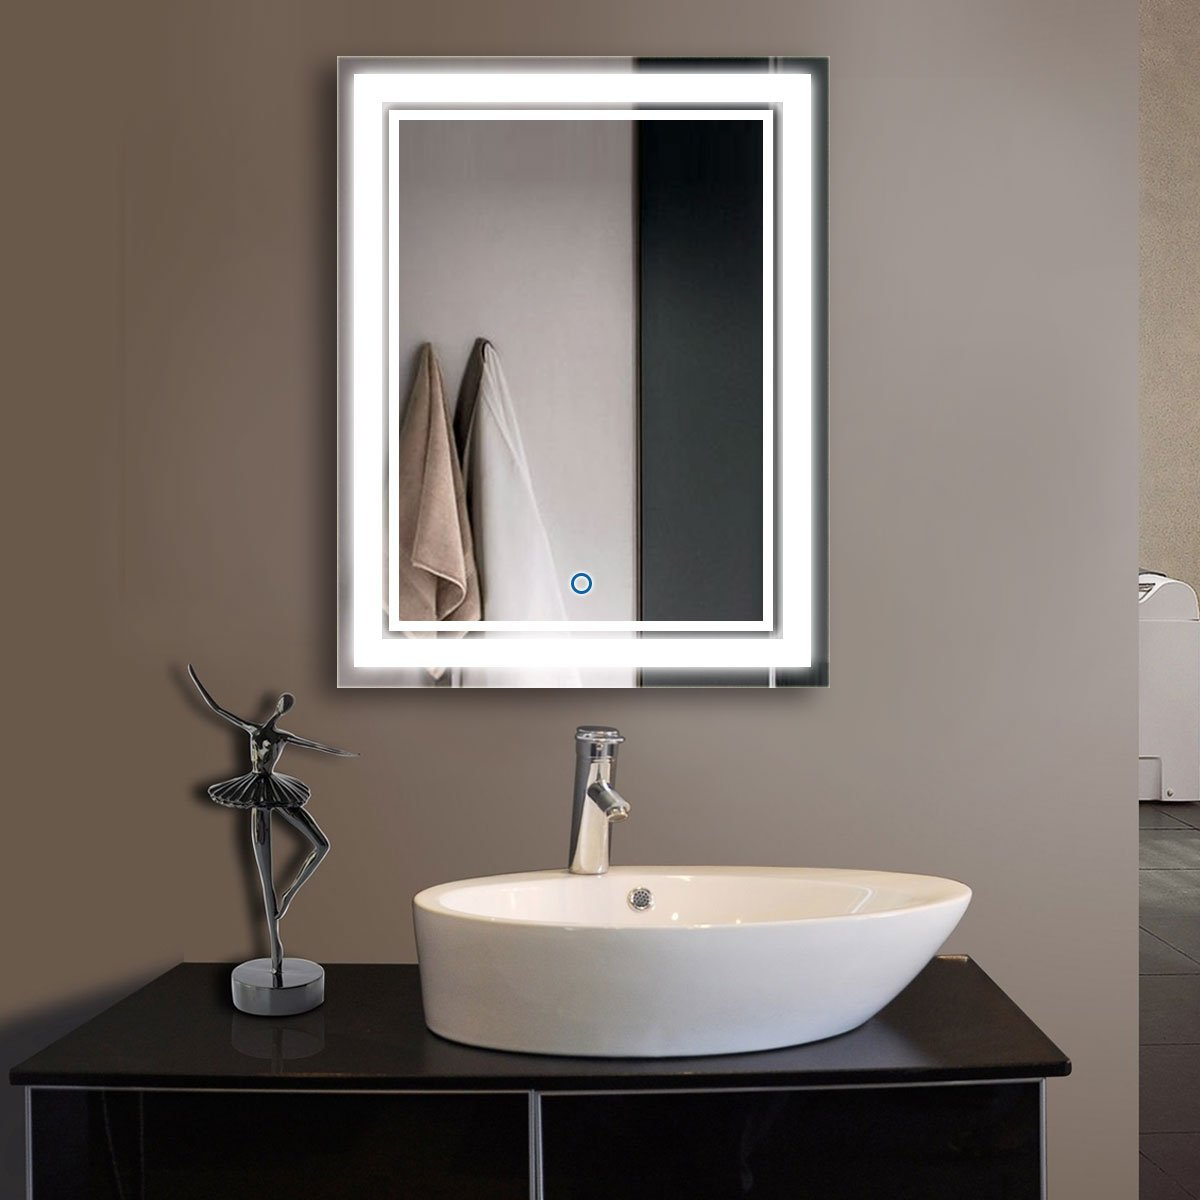 36*28 in. Vertical LED Bathroom Silvered Mirror with Touch Button,(D-CK160-I)